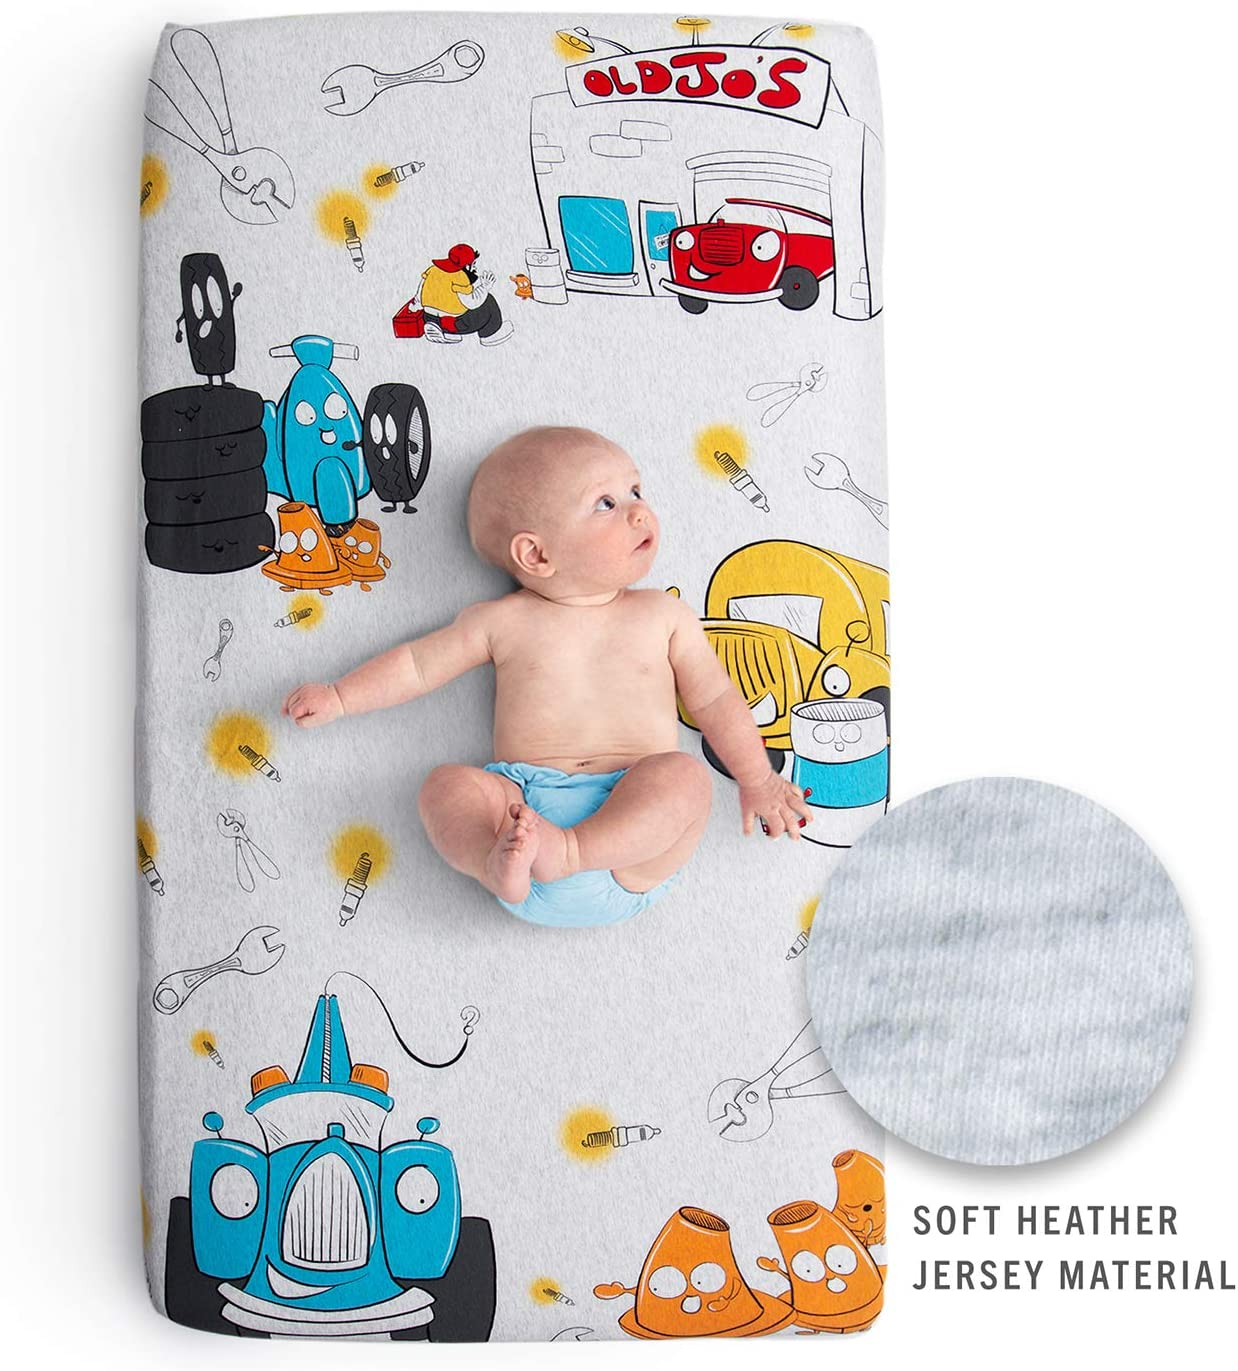 JumpOff Jo - Stretchy Fitted Crib Sheet, 100% Jersey Cotton, Super Soft, Colorful Cars, Trucks and Auto Design, Jo's Garage